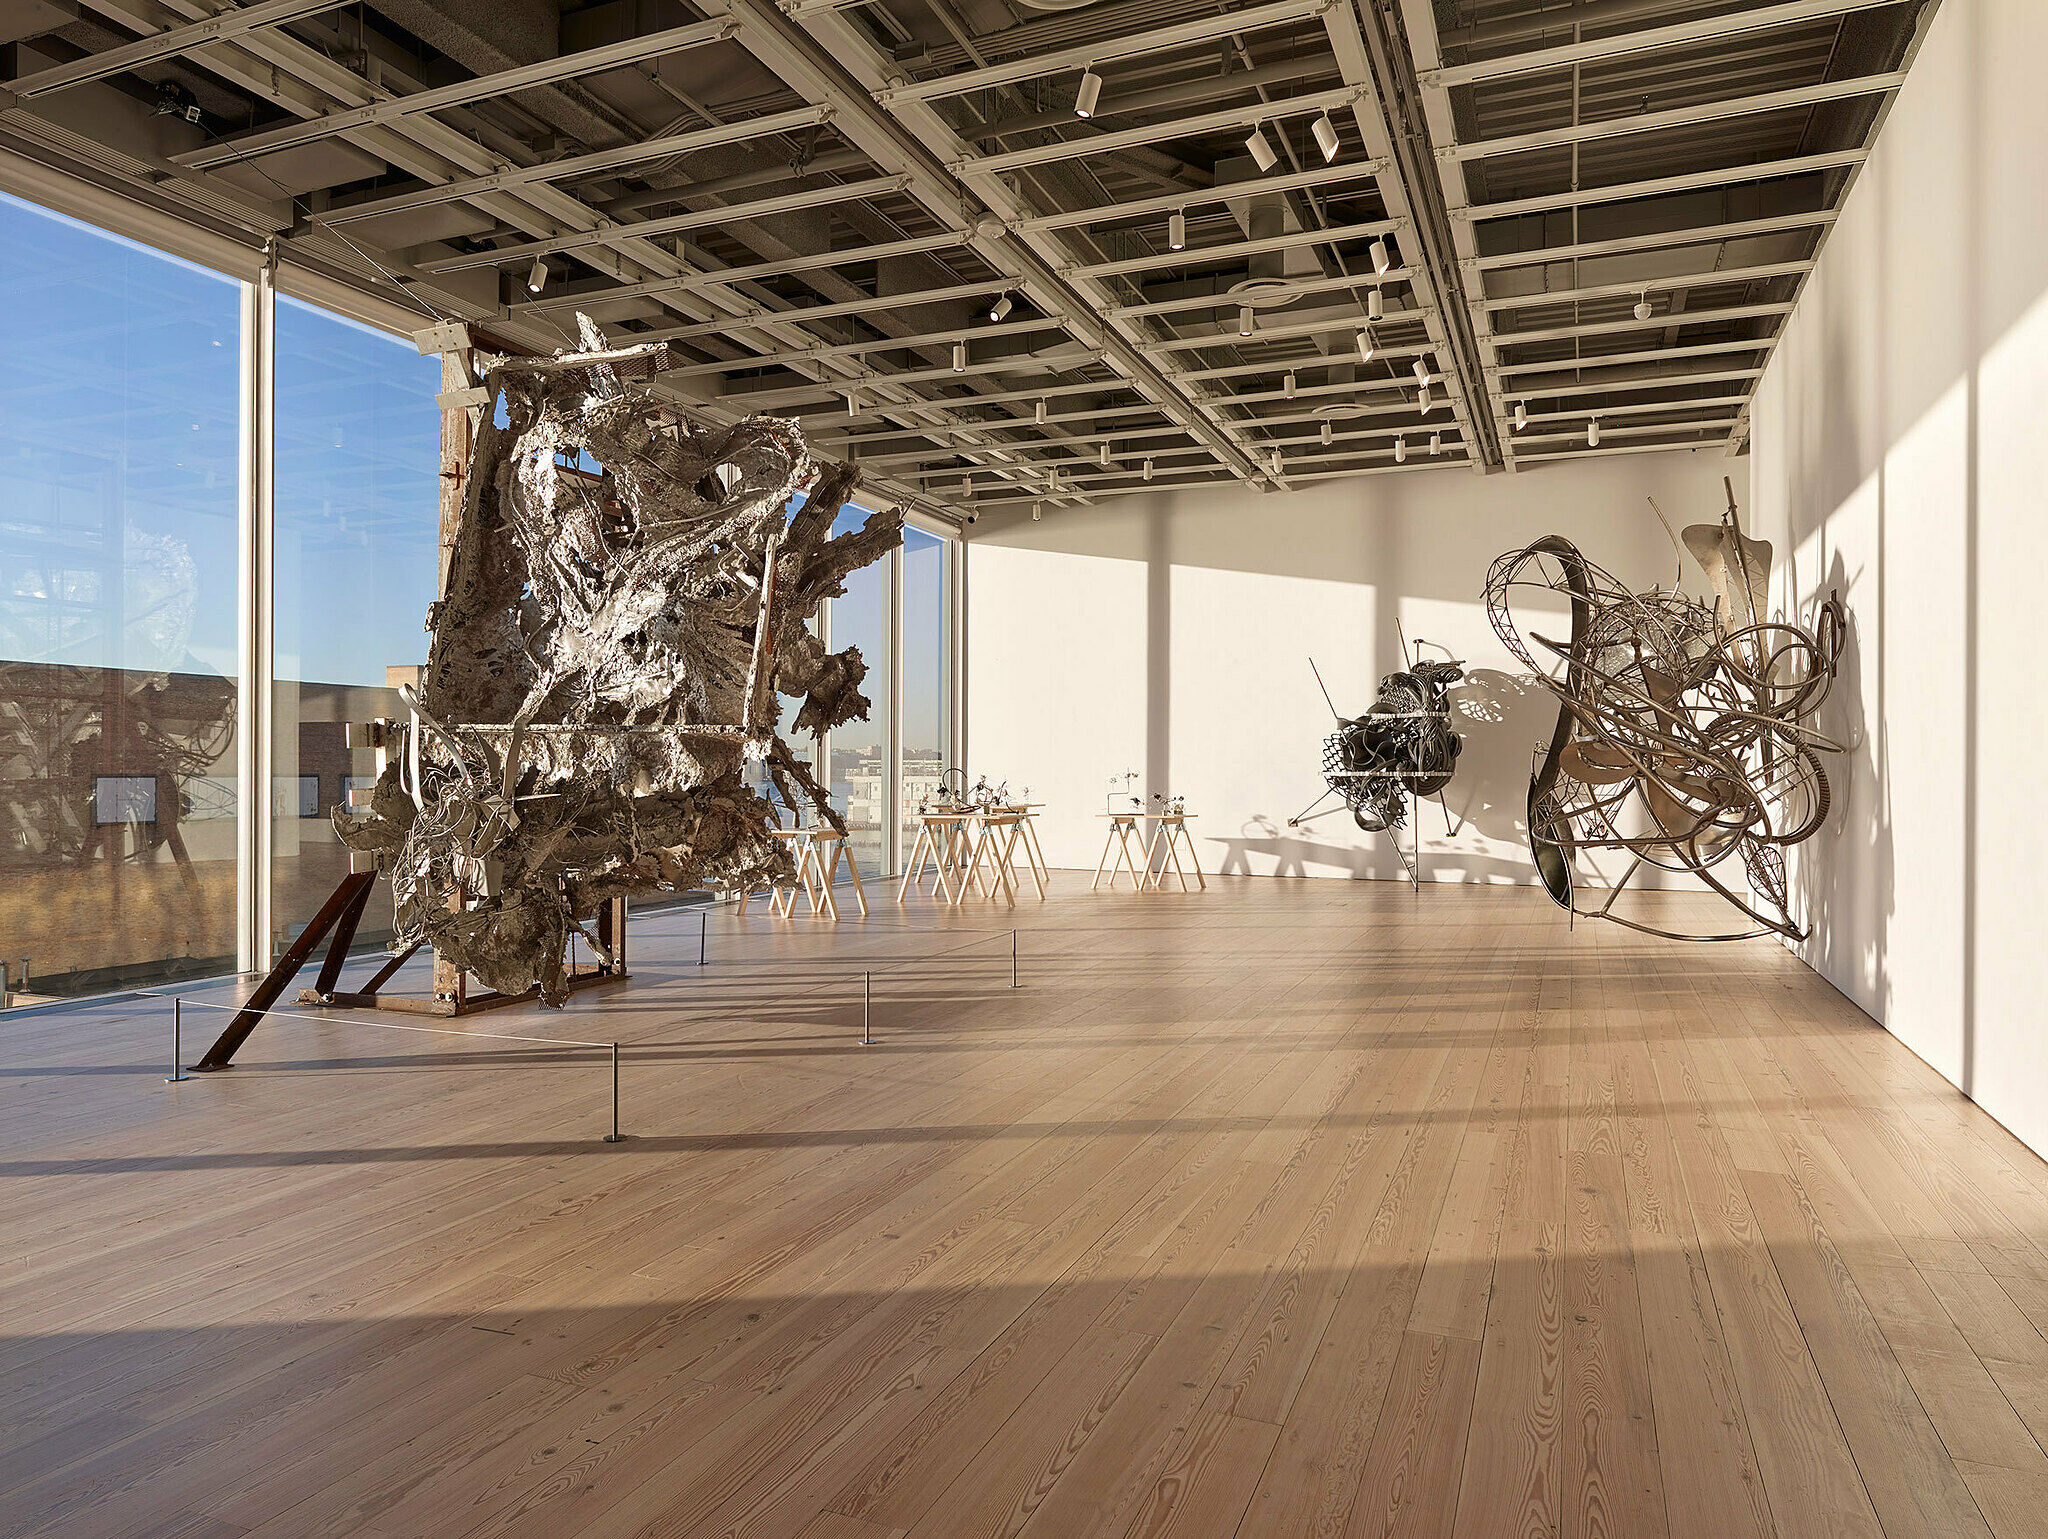 Metal sculptures hang and stand freely in a gallery space.